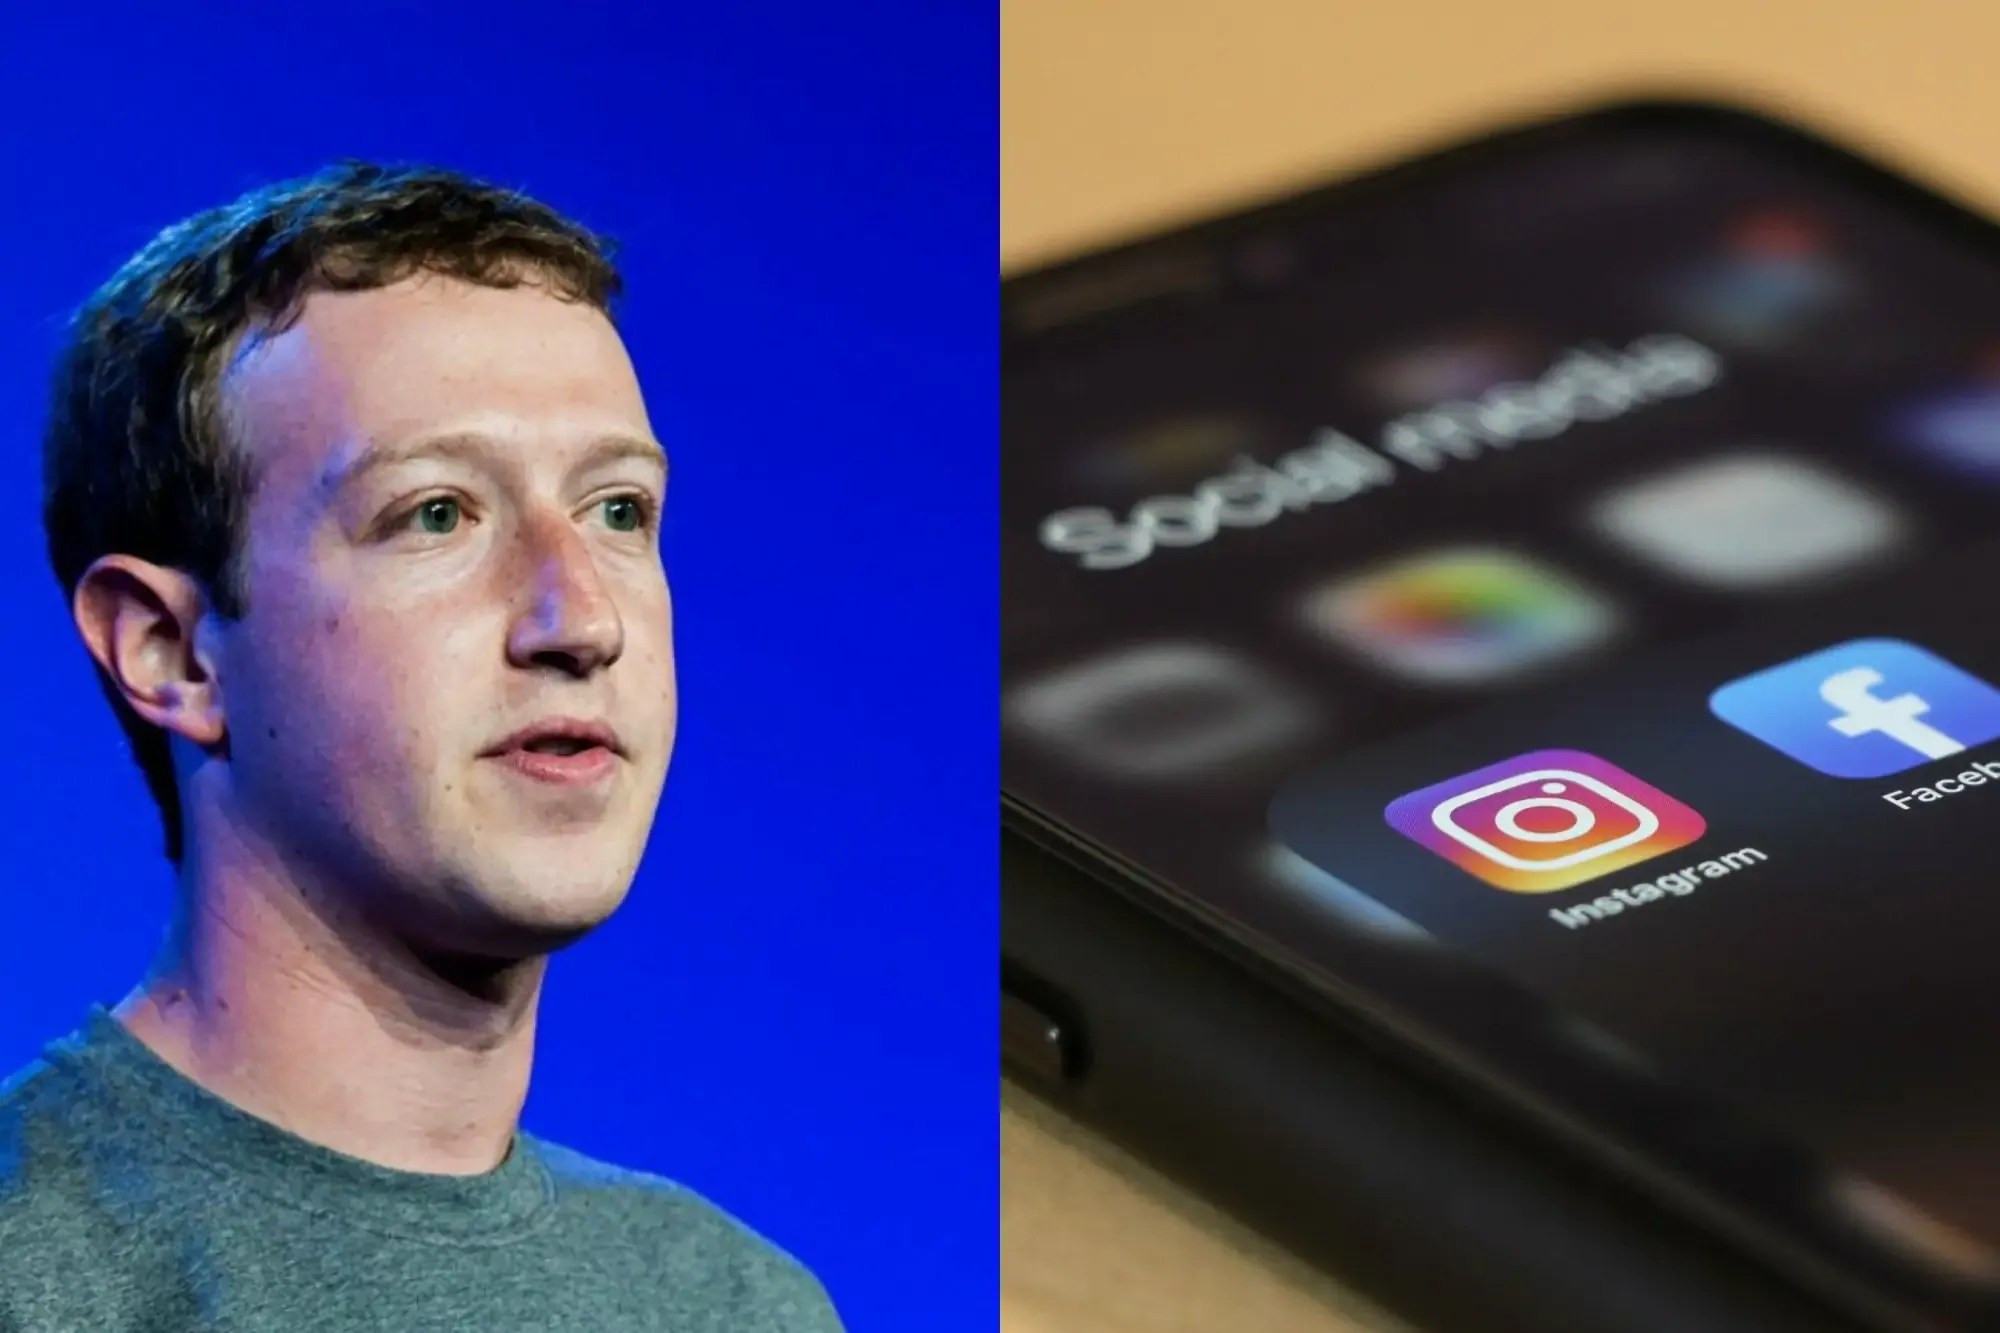 Mark Zuckerberg loses $6 Billion after Facebook, Whatsapp and Instagram outage which lasted for 6 hours